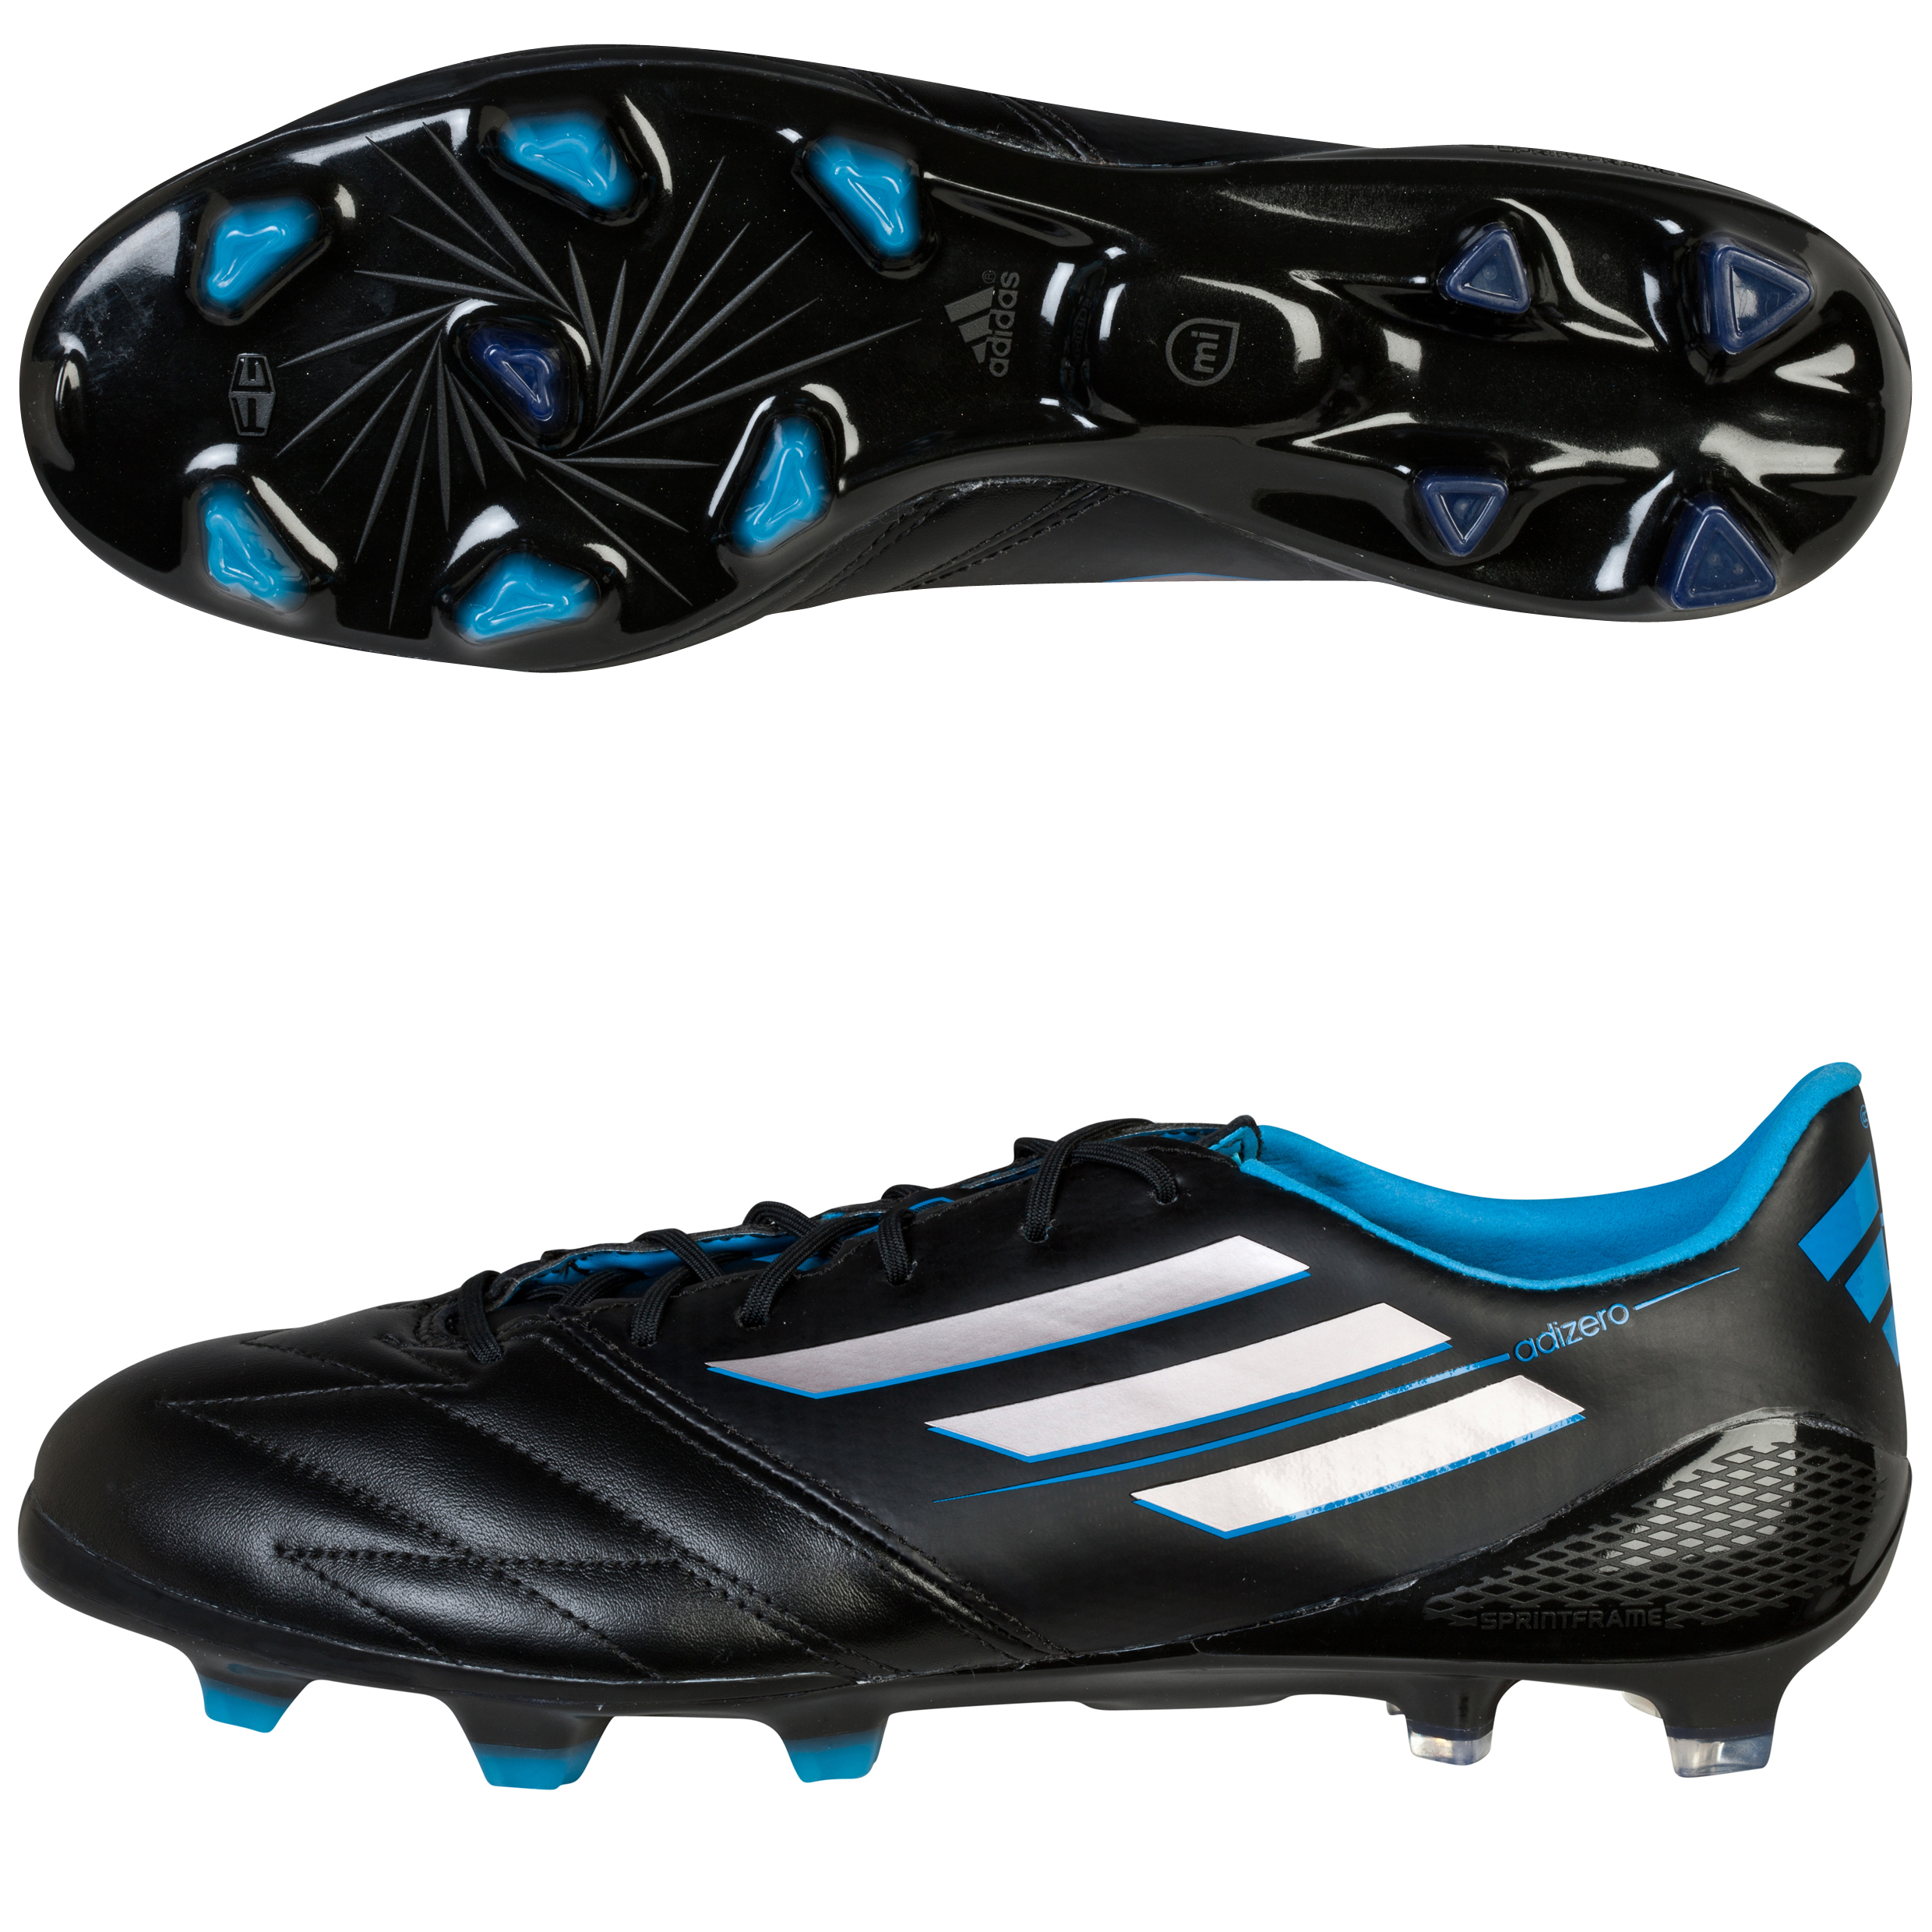 Adidas F50 adiZero TRX Leather Firm Ground Football Boots Black